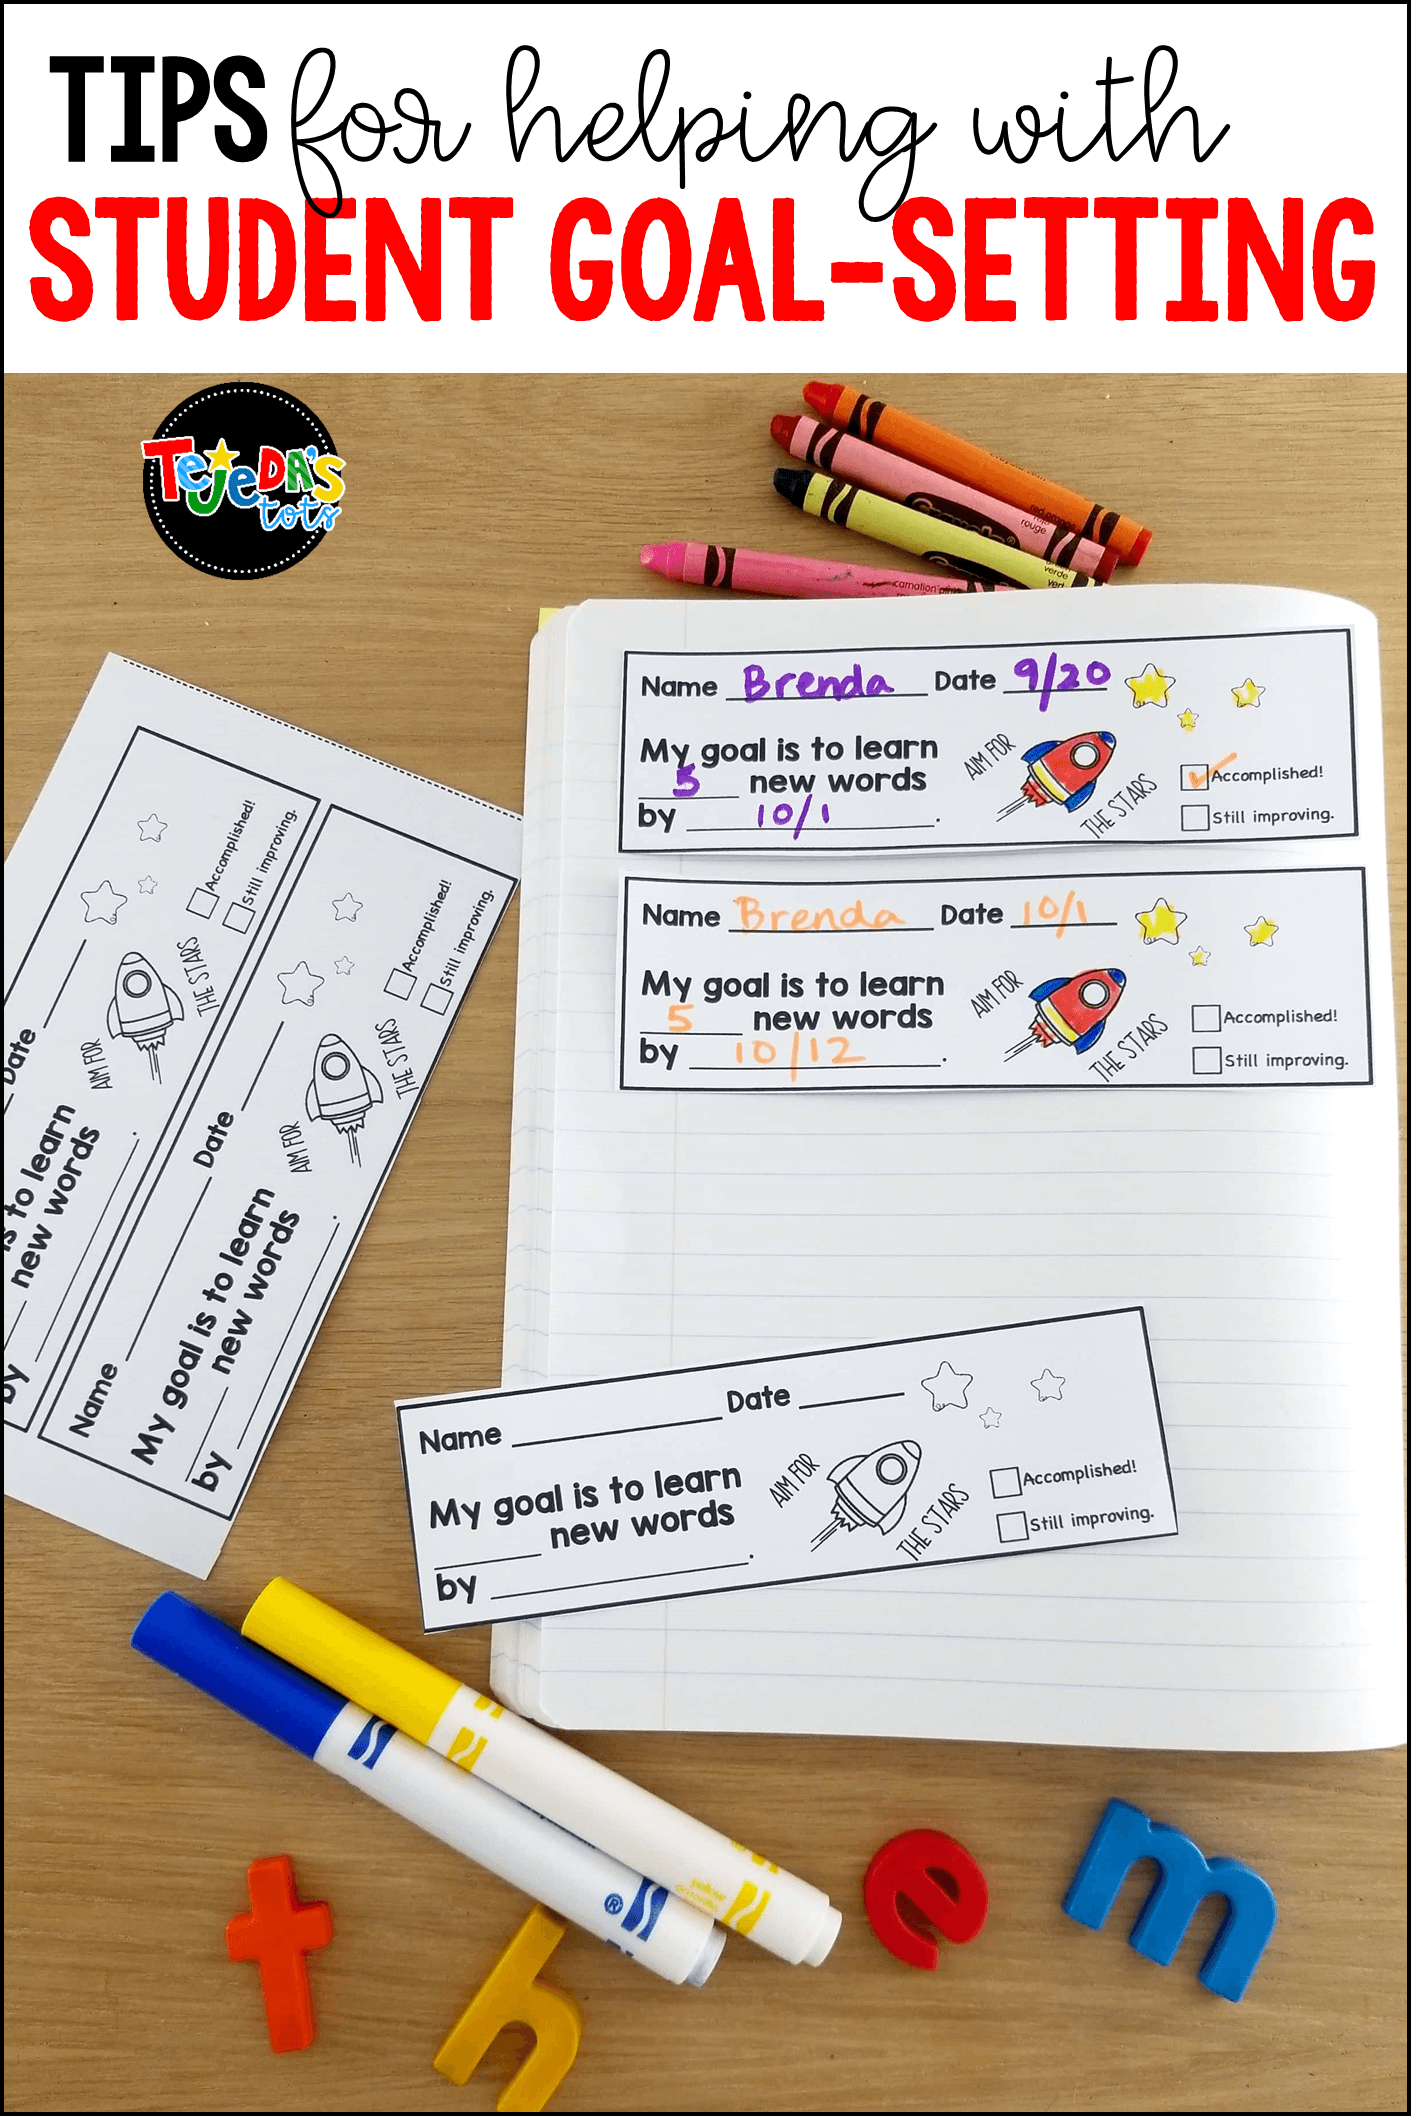 Allowing students to set their own goals is powerful! This blog post shares benefits, tips and ideas for boosting student success with goal-setting! These sight word slips help students set and meet goals for learning sight words. #tejedastots #sightwords #studentgoalsetting